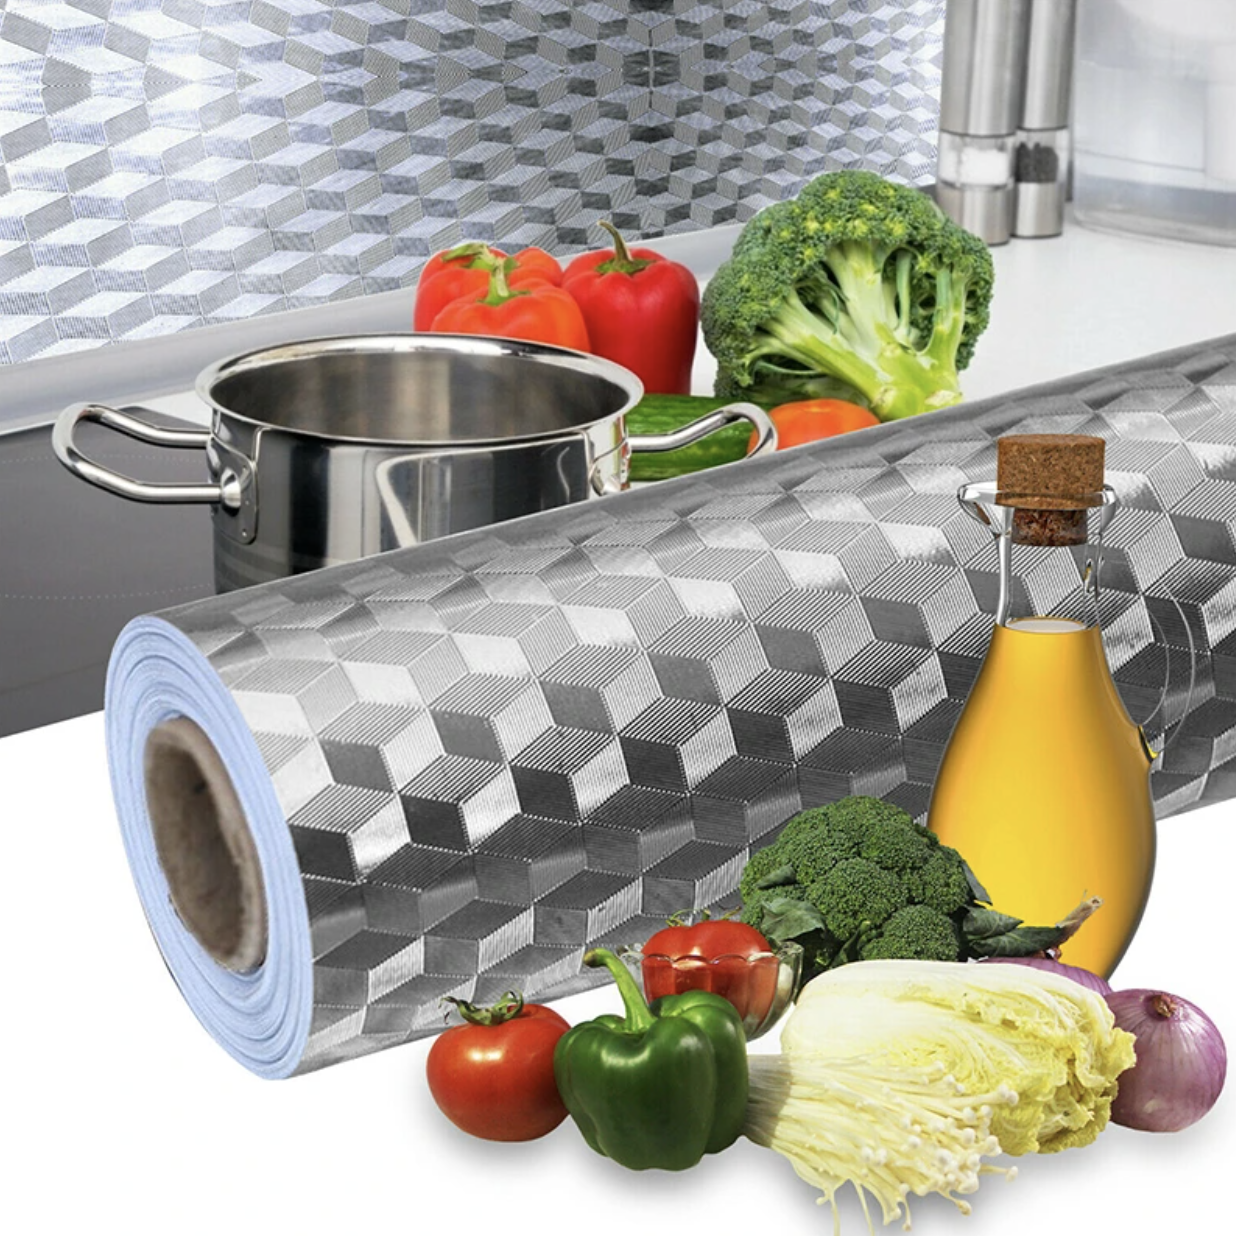 50% OFF---KitchenStick Foil | No more dirty spots in the kitchen